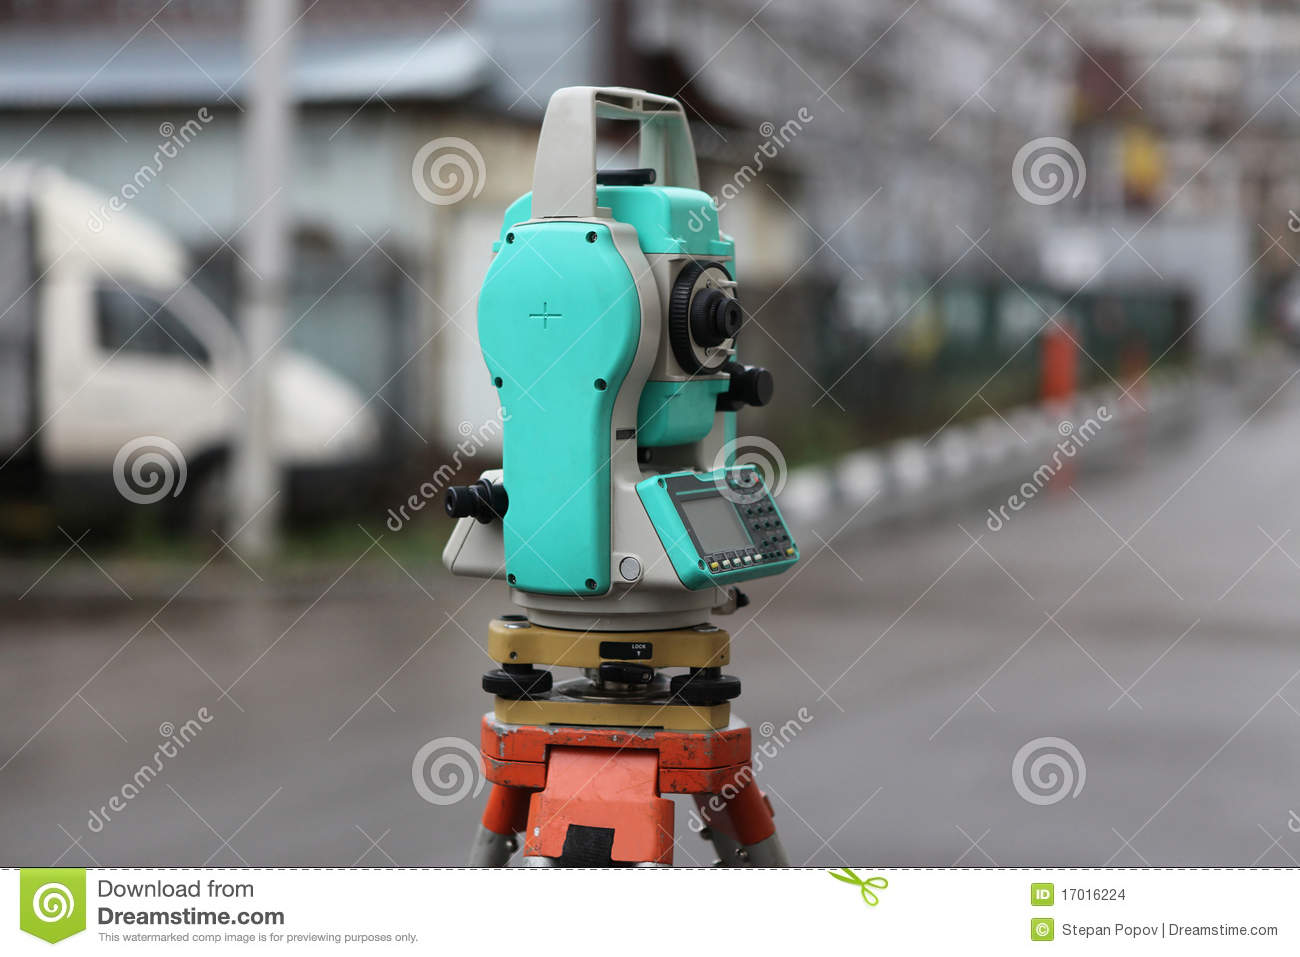 how to read a theodolite